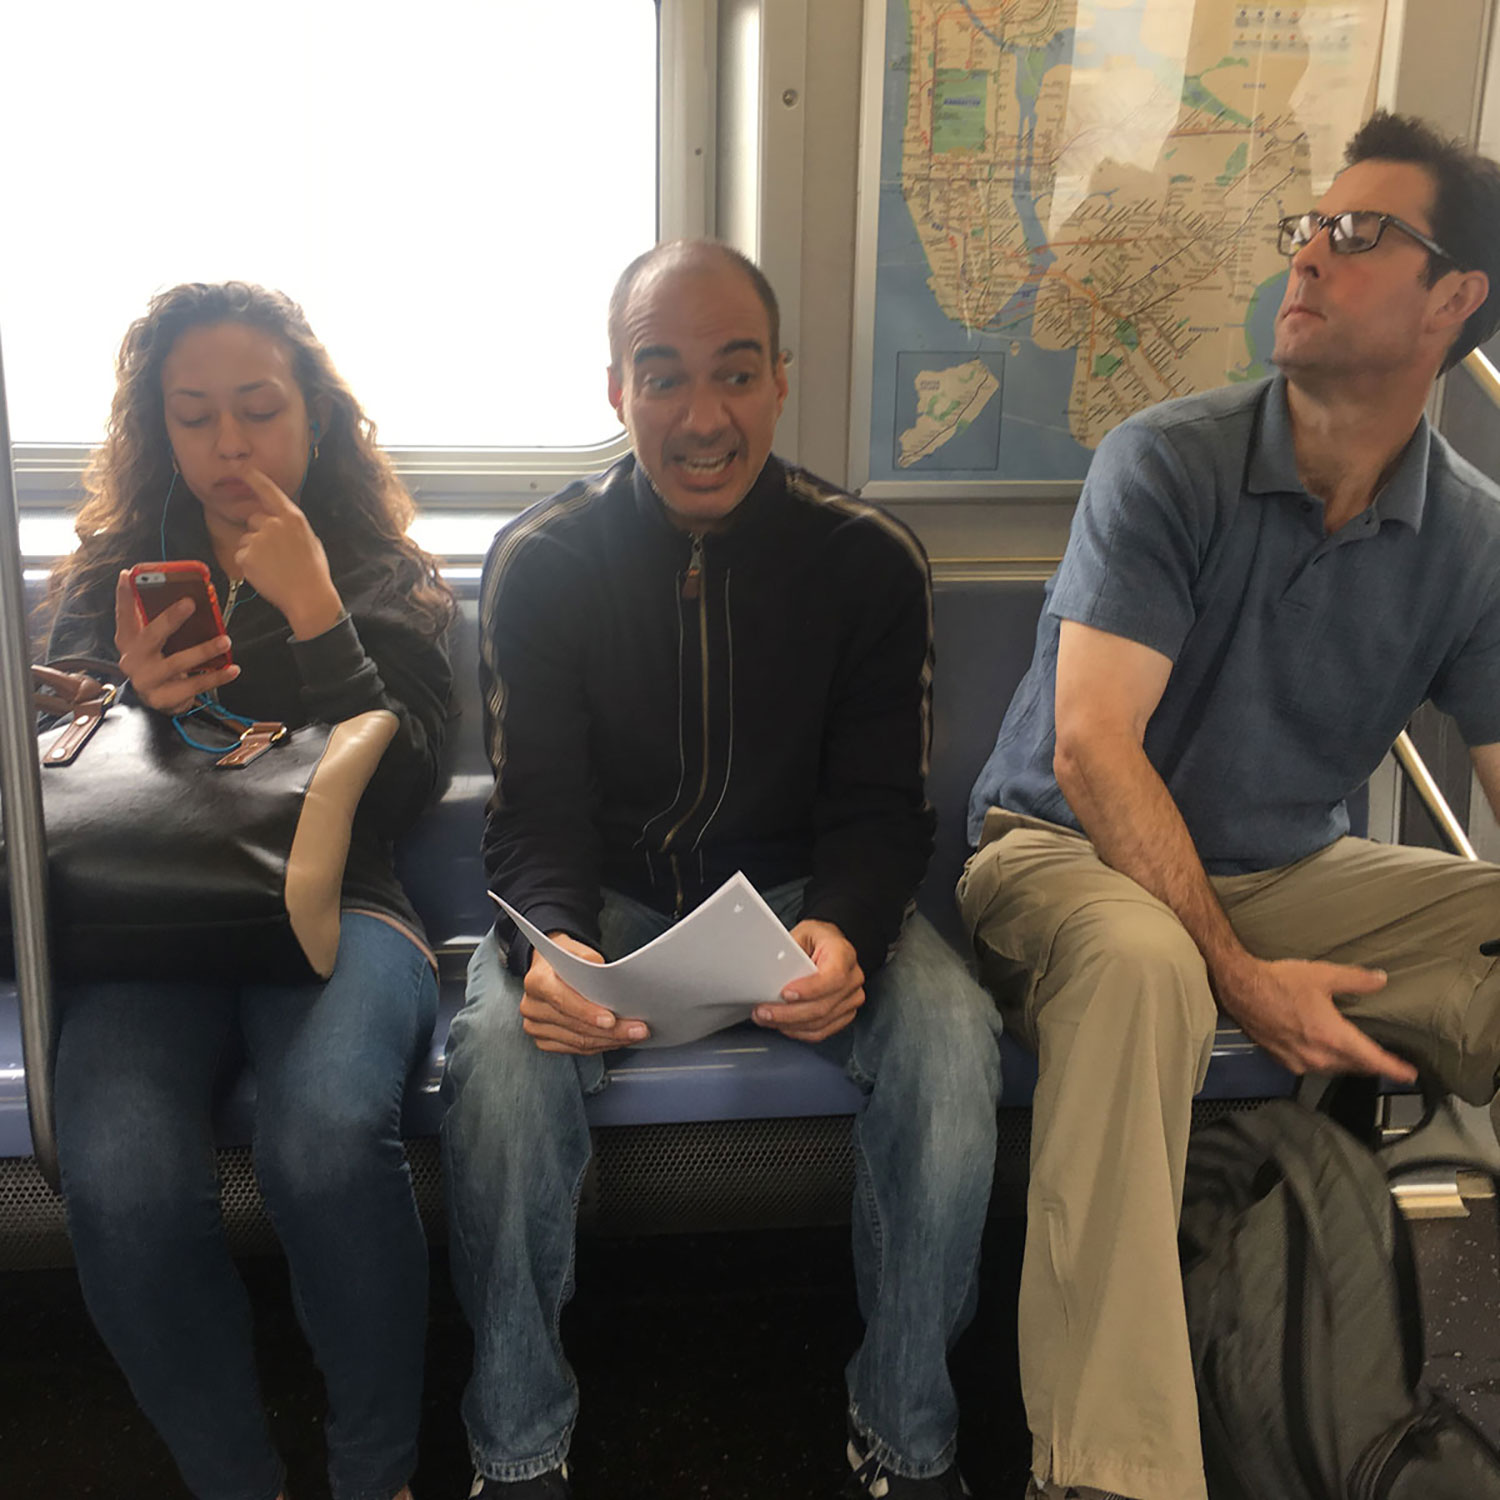 Lines. Subway. Rent Control. A new play by Evan Zes premiering at FringeNYC August 2016.